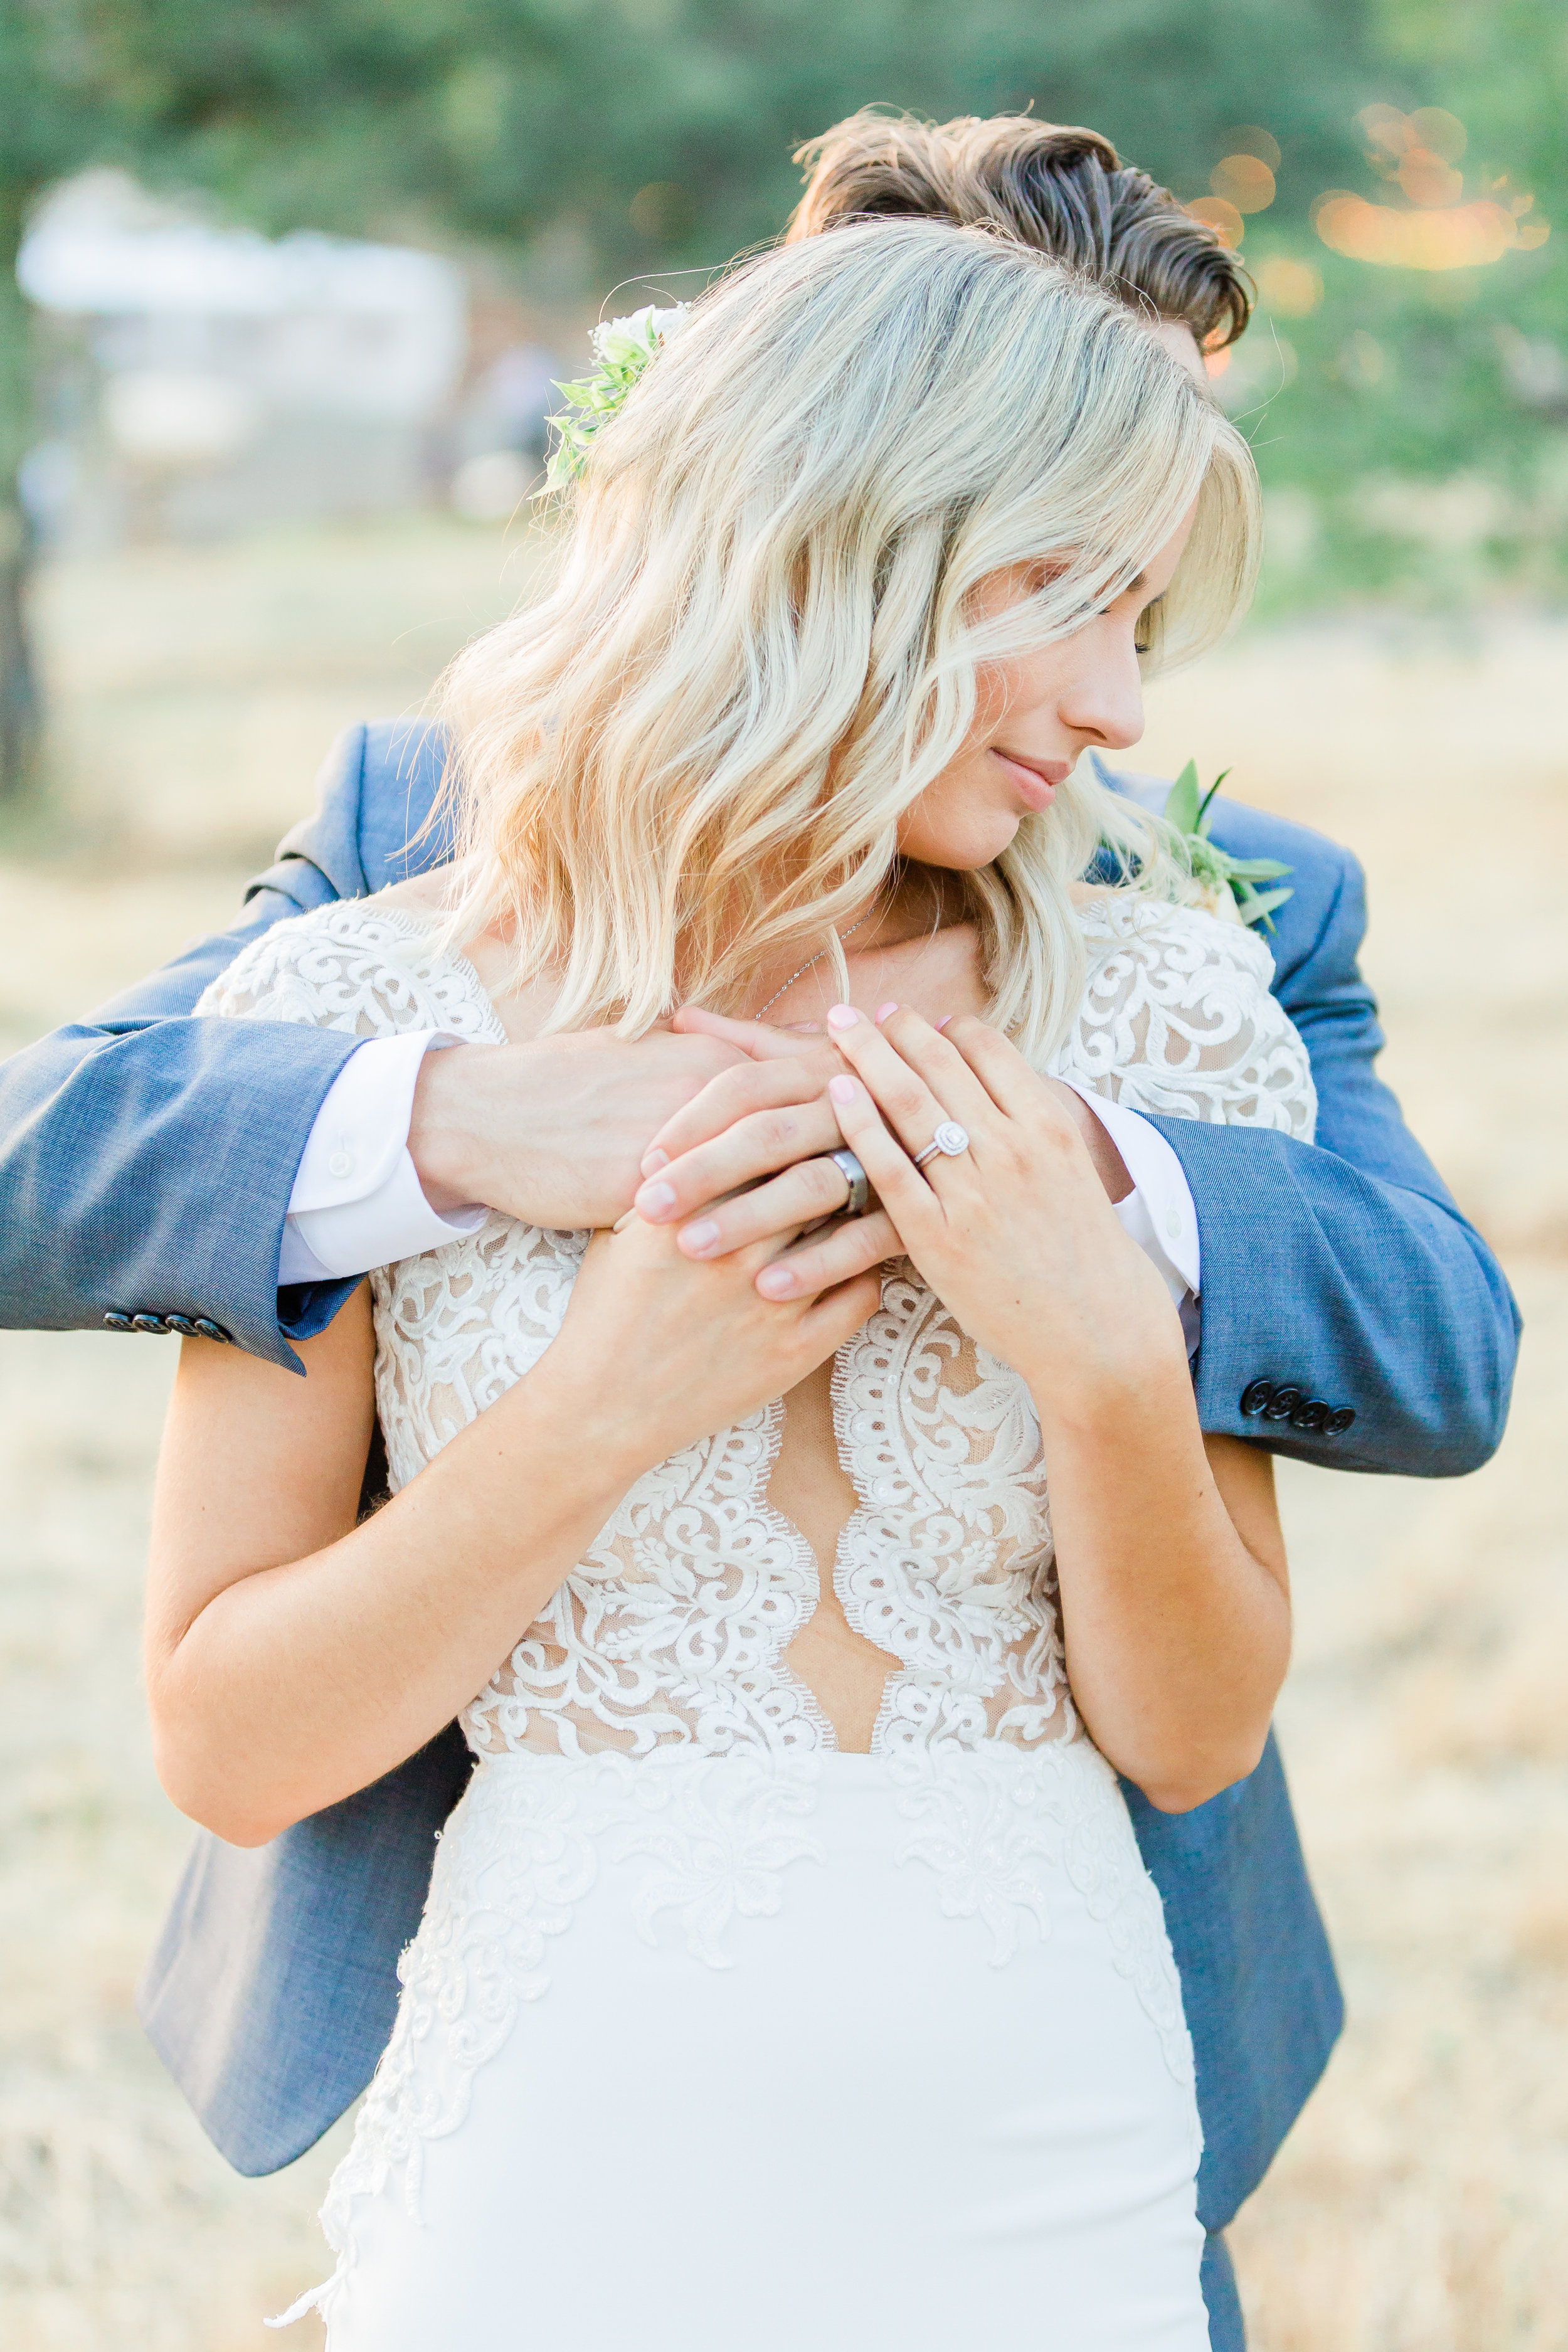 Kaitlynn and Colby - Married - Sneaks - Lauren Alisse Photography-112.jpg